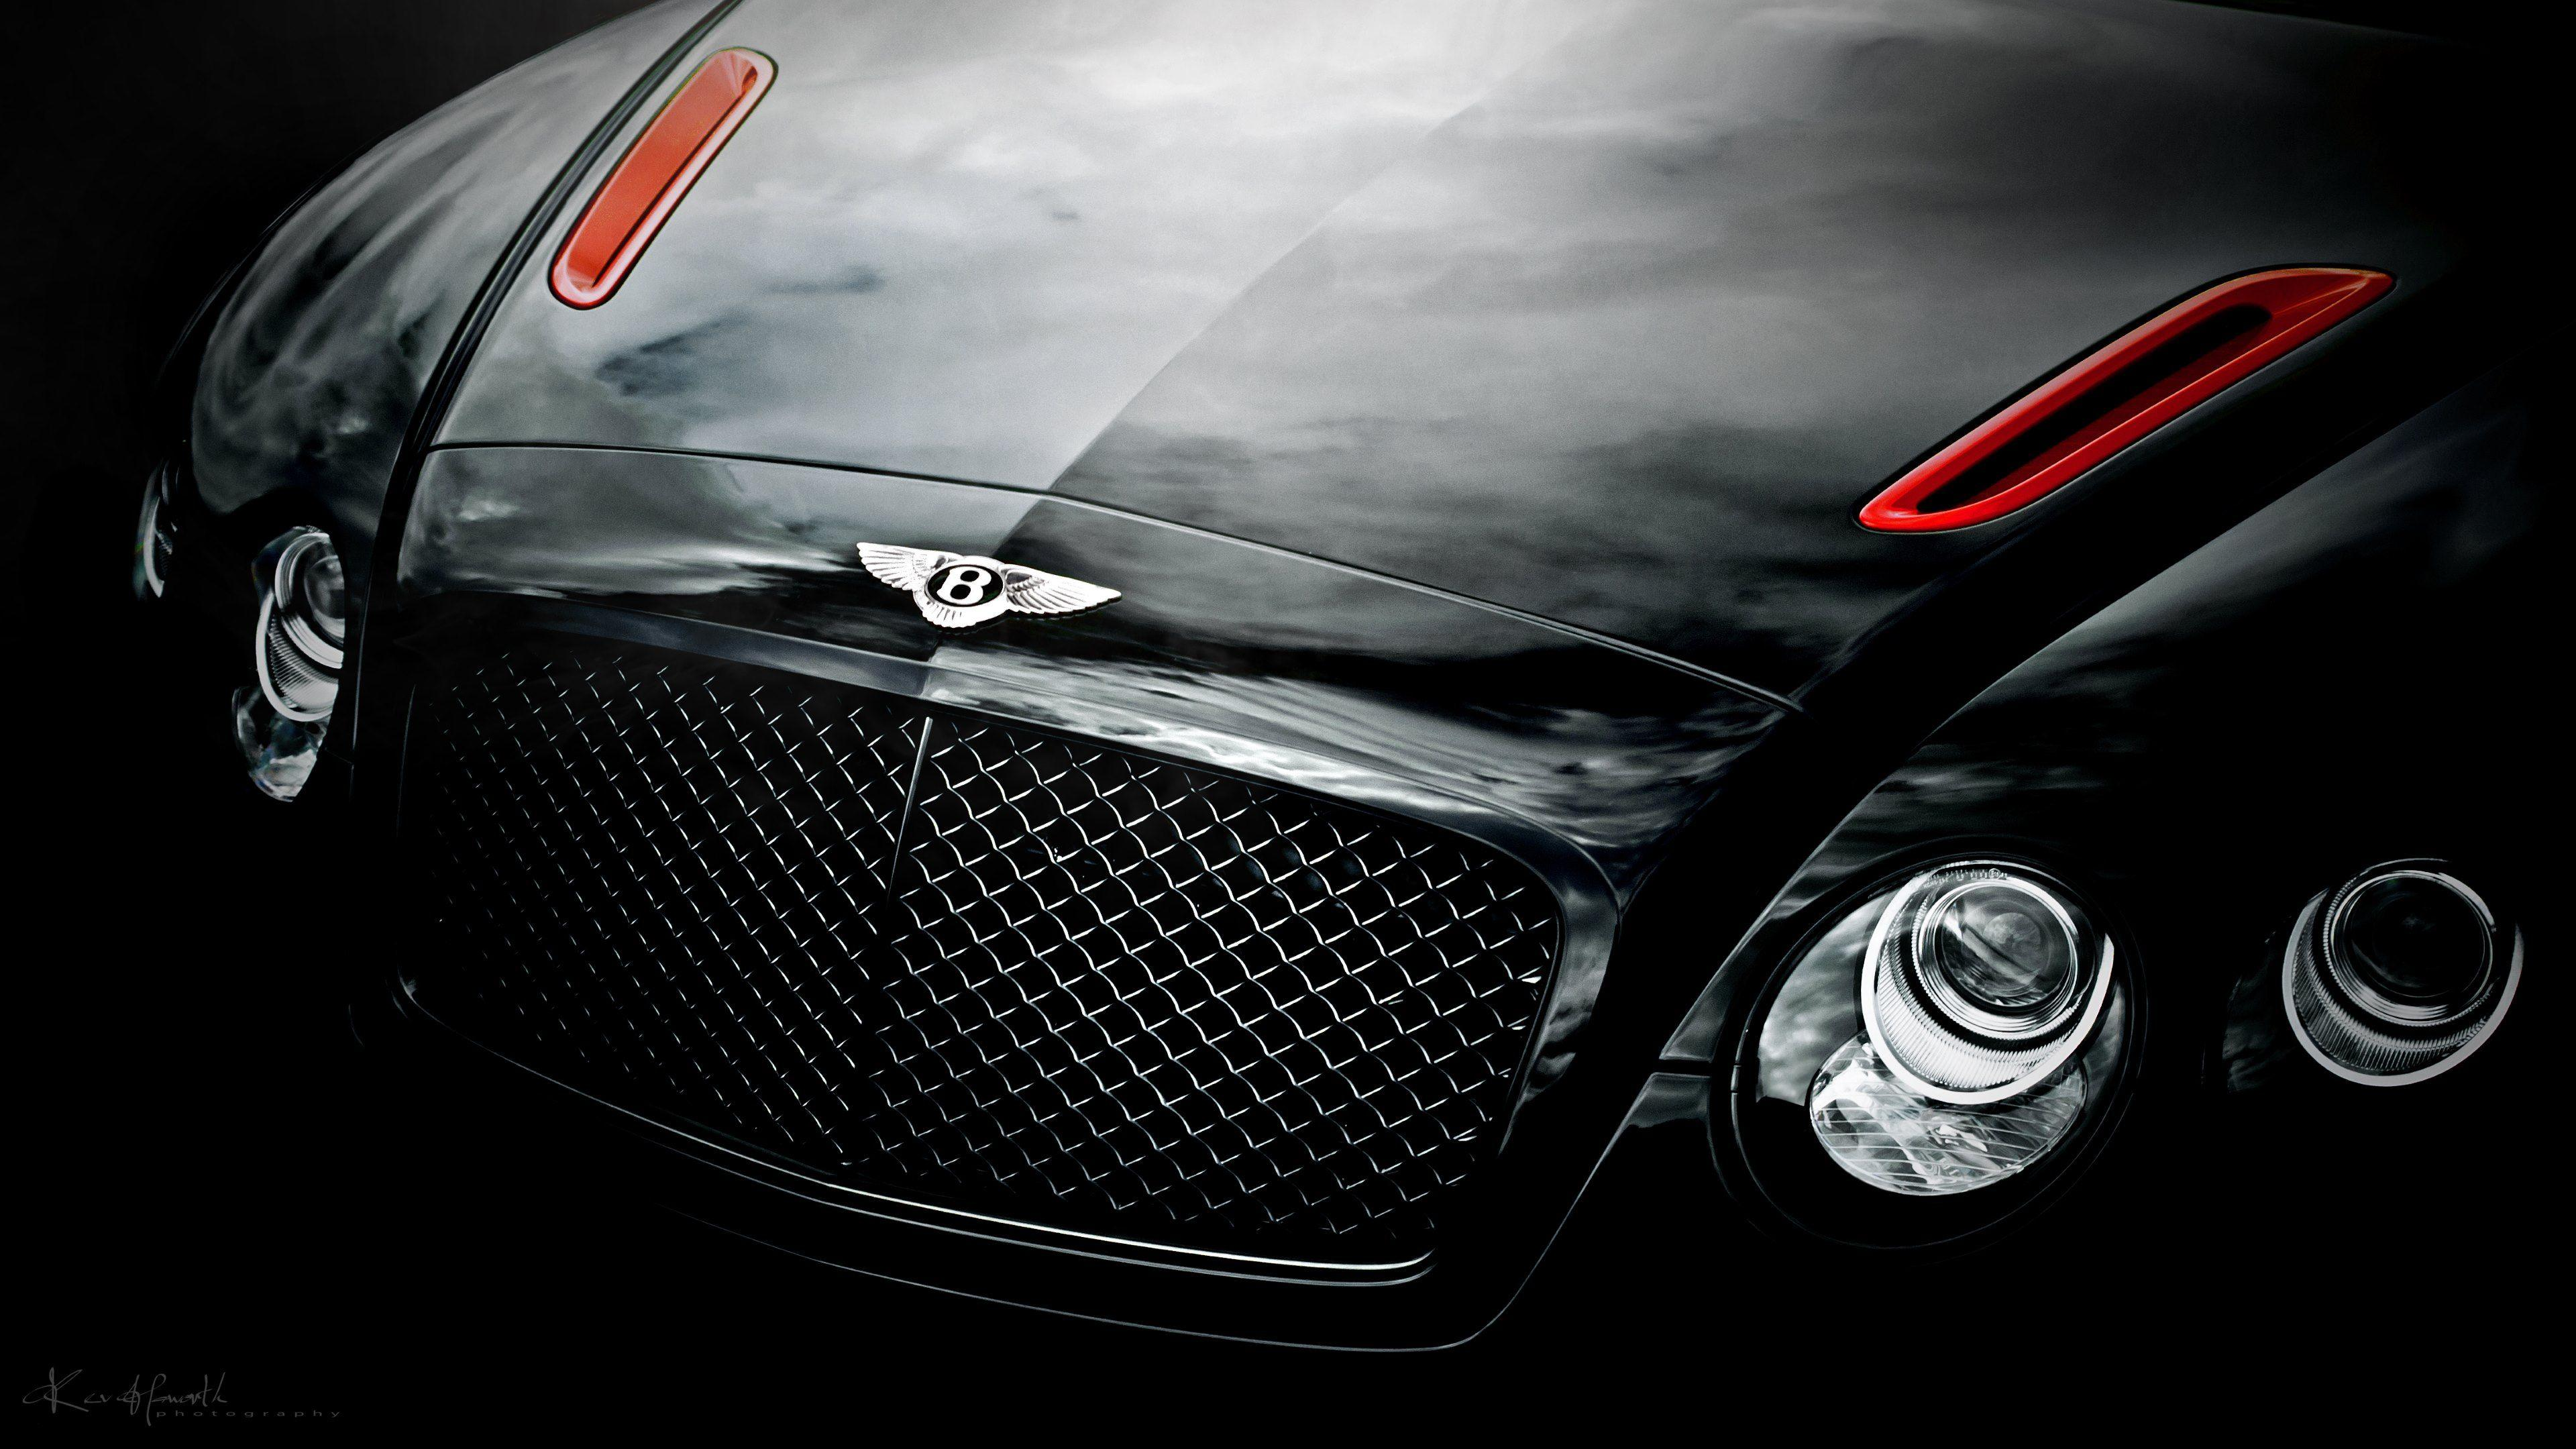 Bentley Continental GT Wallpapers, Pictures, Images